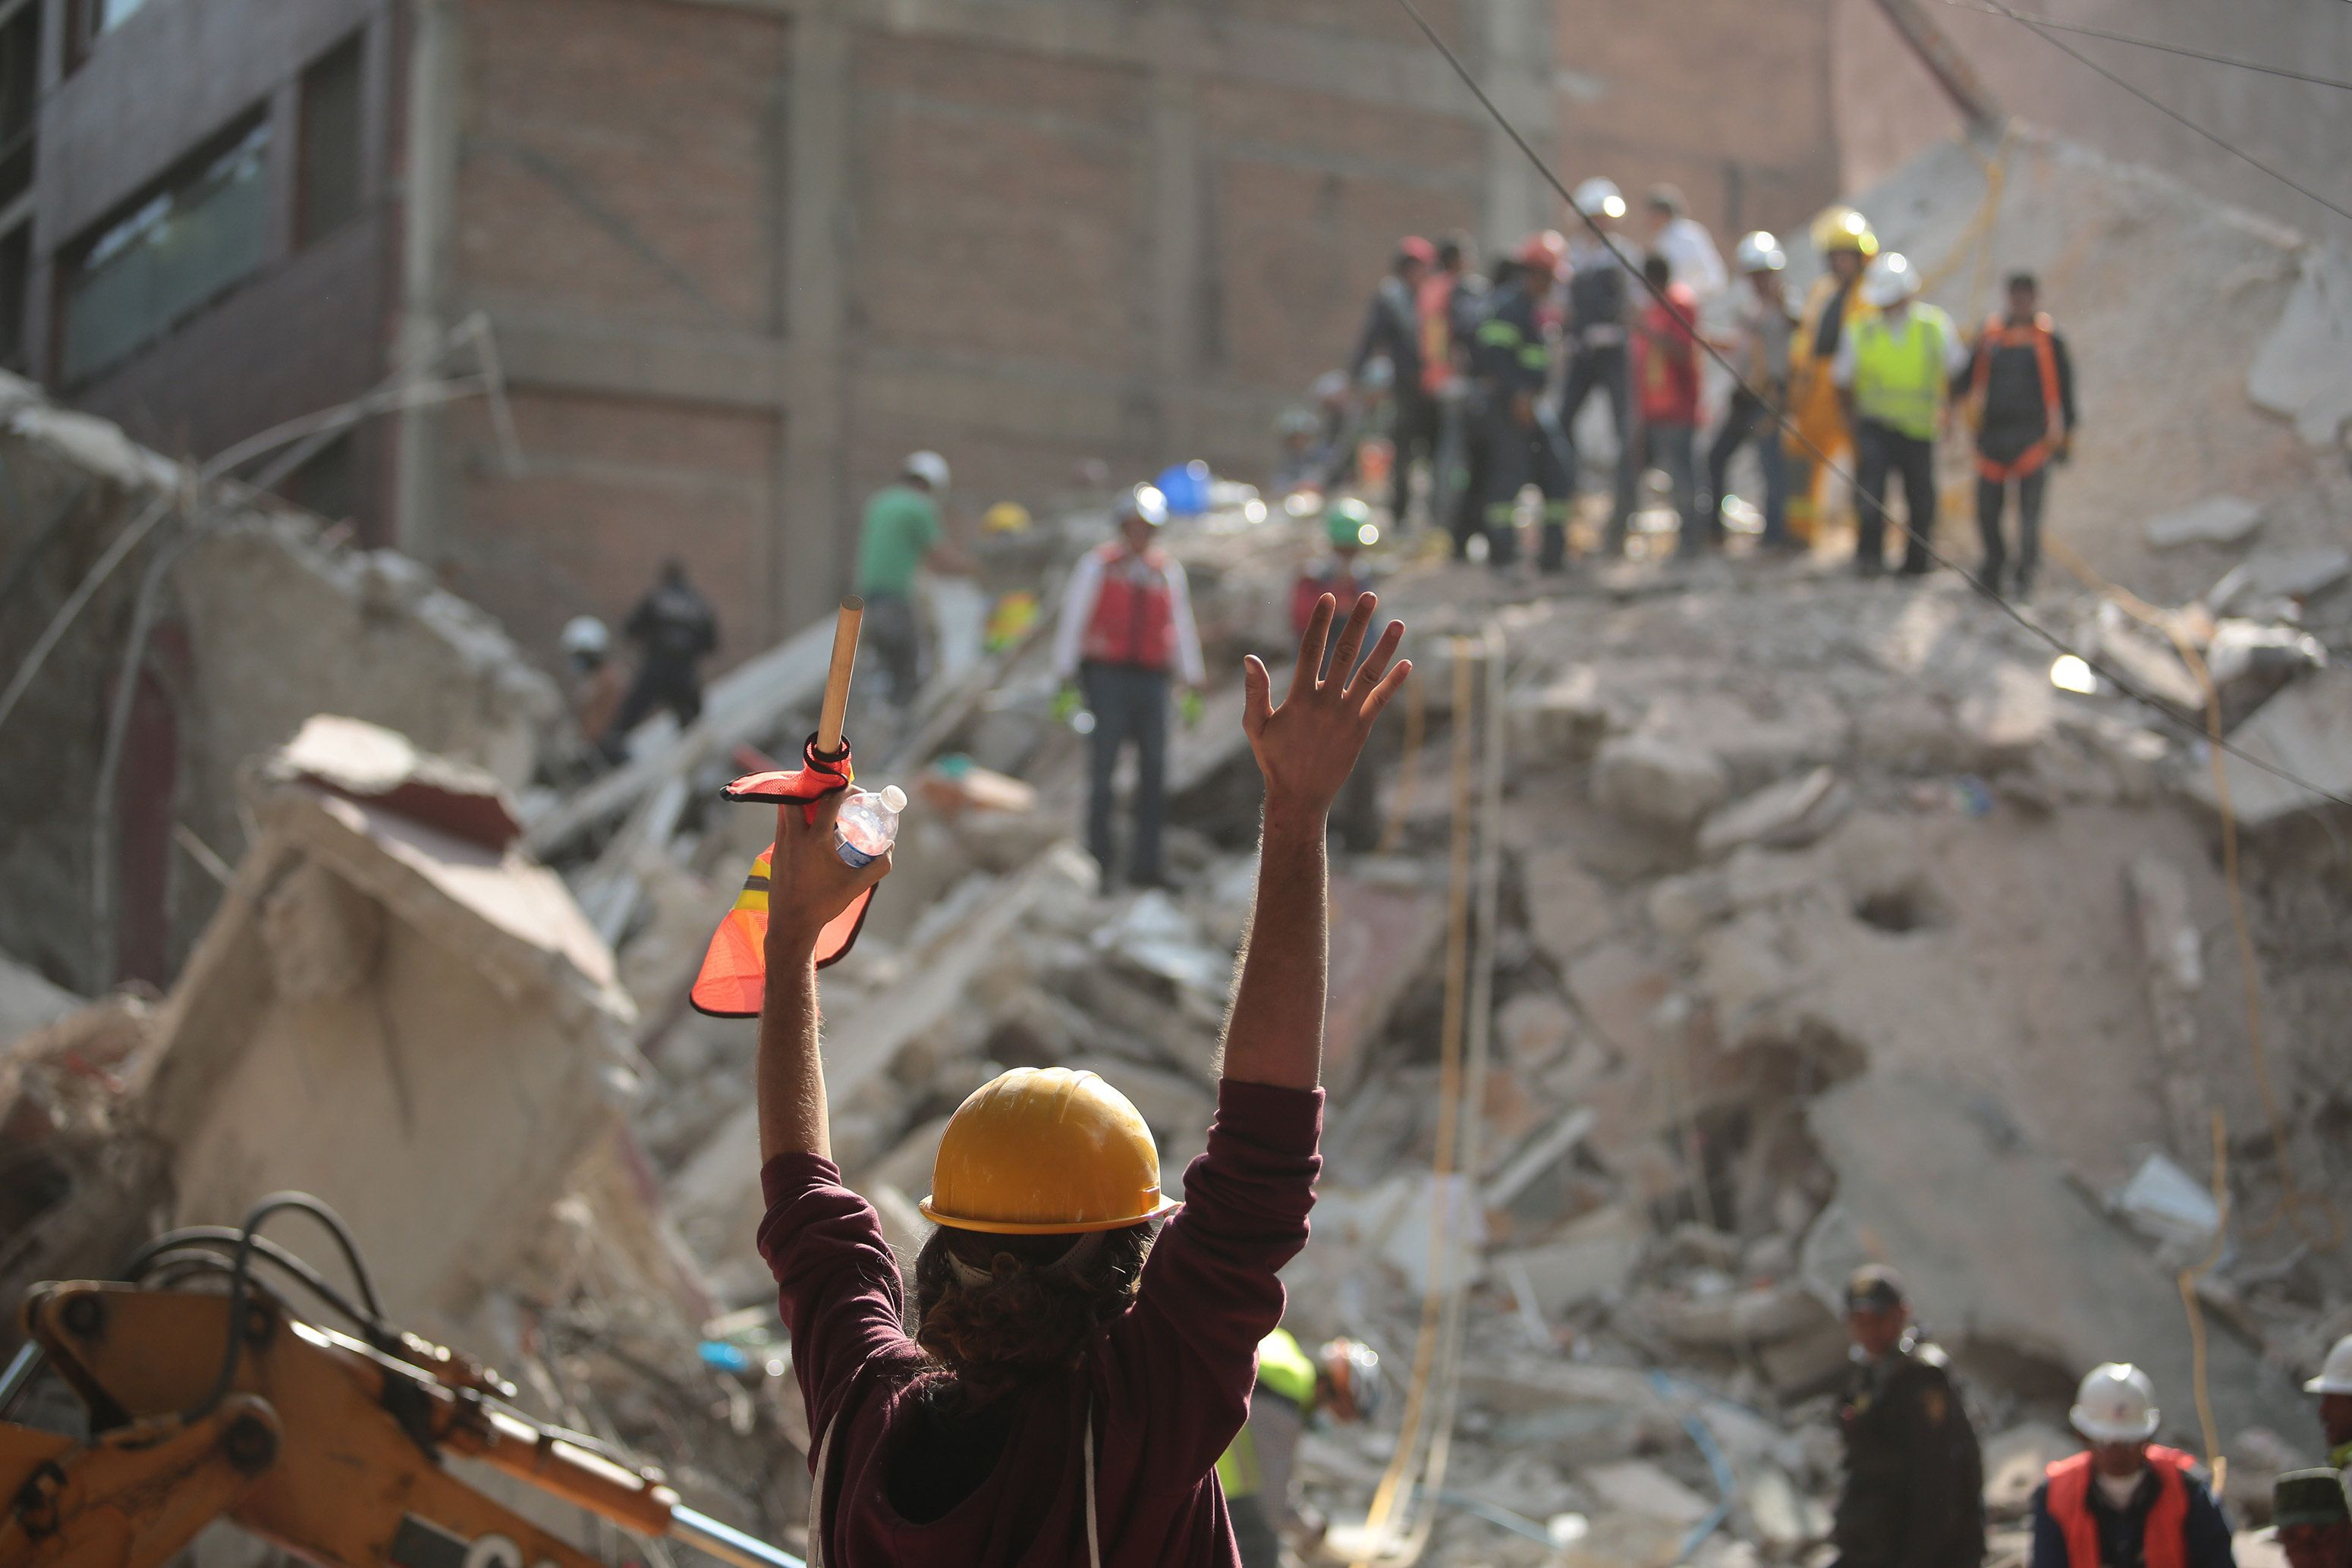 Mexico Watches Frantic Effort to Rescue Girl From Earthquake-Hit School